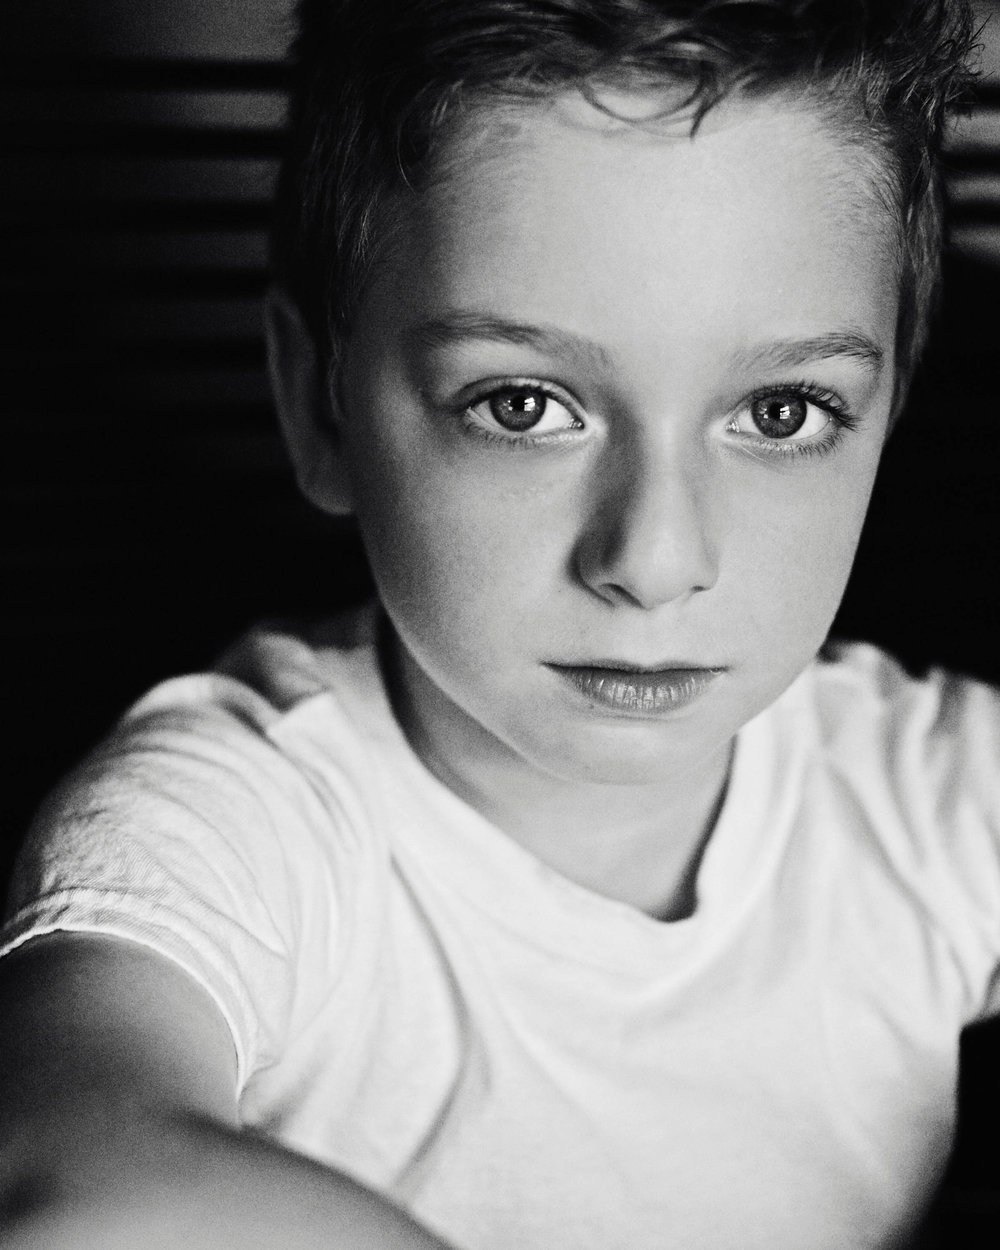 DSC_1905 harrison handsome B&W portrait final.jpg